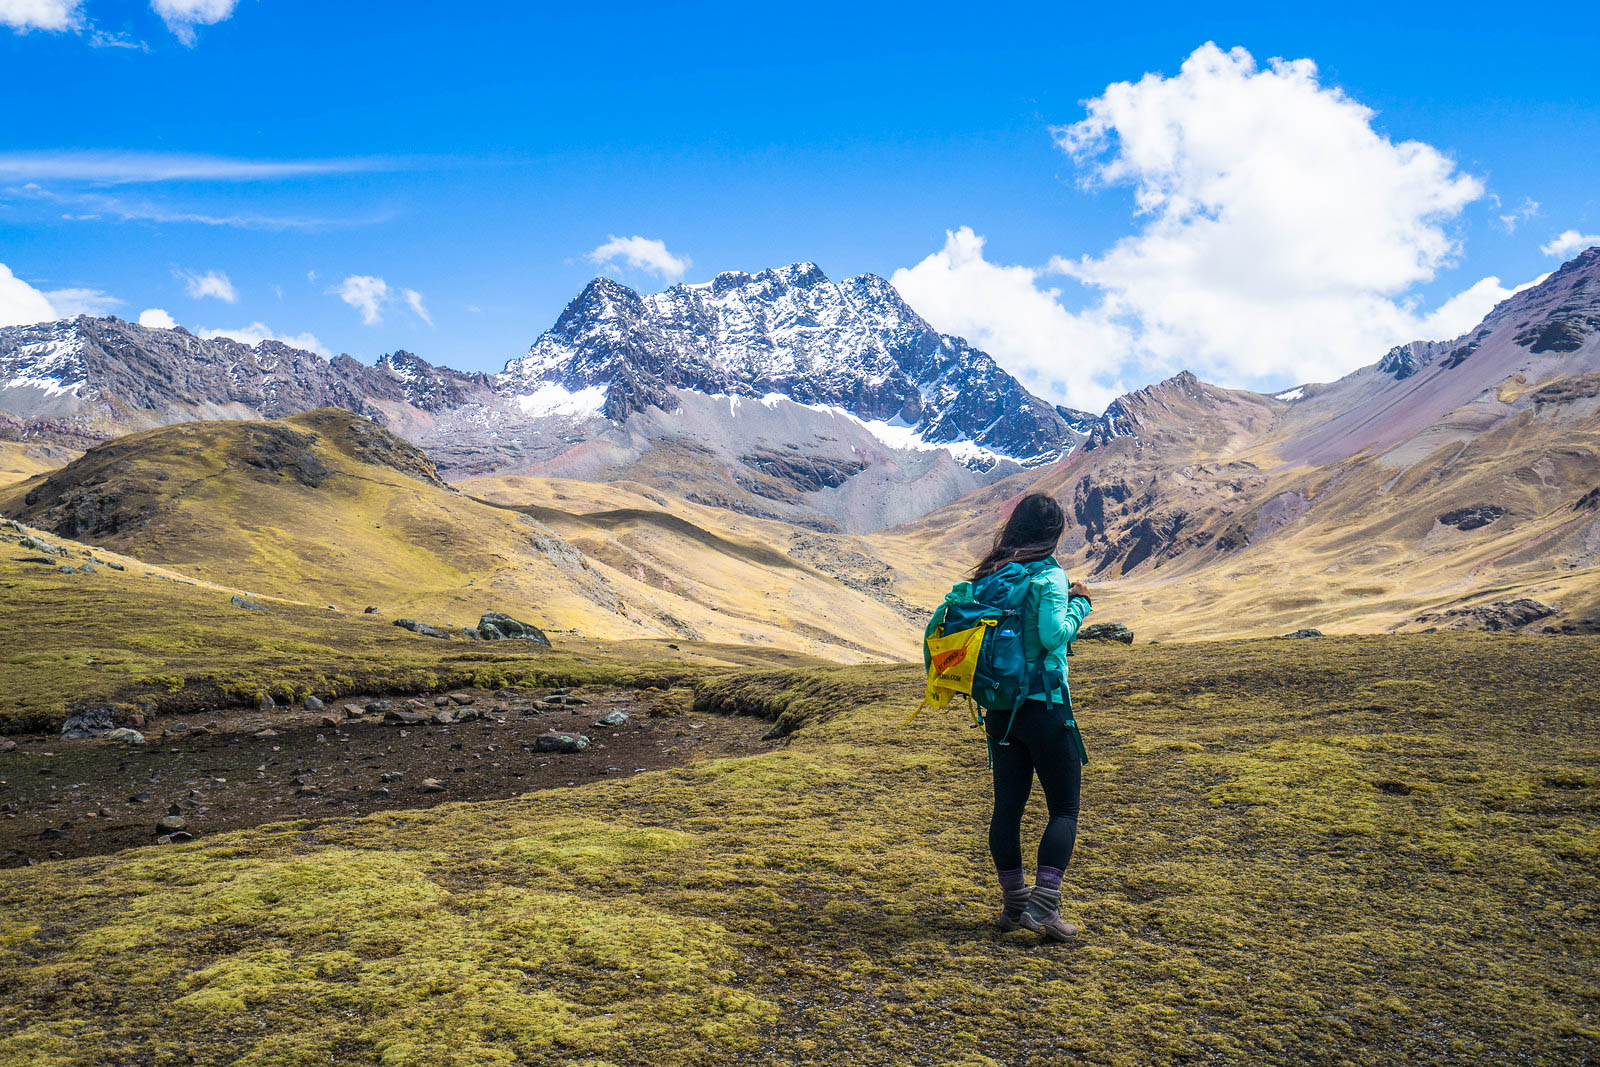 The Ultimate Day Hiking Packing List: 15 Essentials to Take on Every Hike